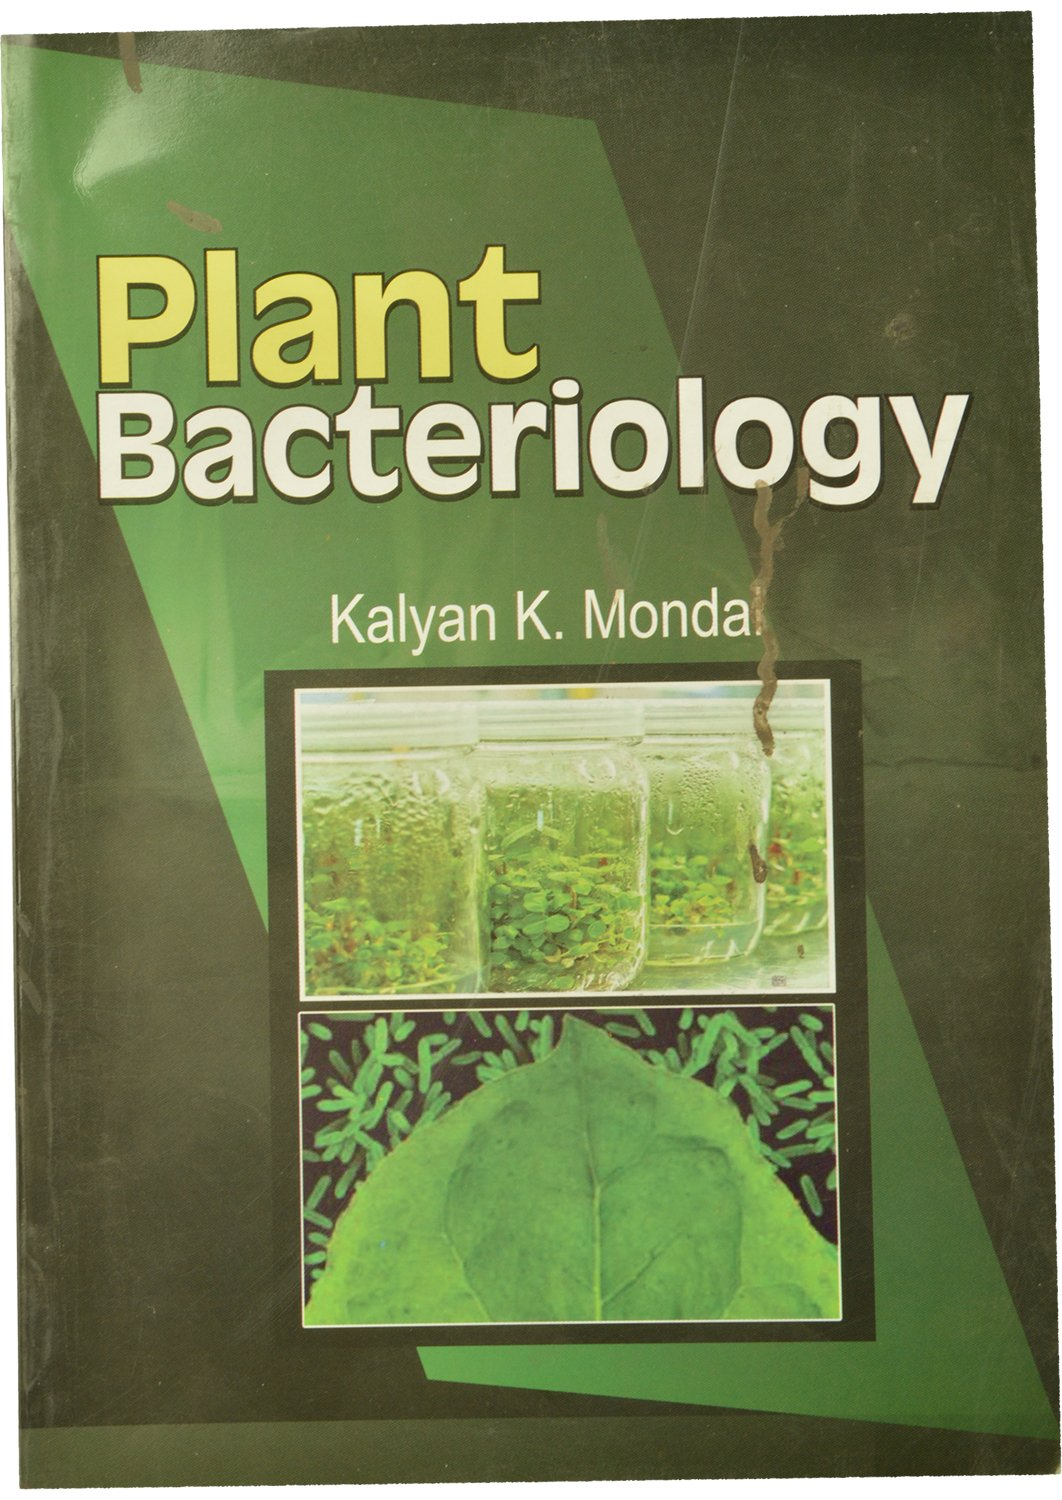 Buy Plant Bacteriology Book Online at Low Prices in India   Plant  Bacteriology Reviews & Ratings - Amazon.in